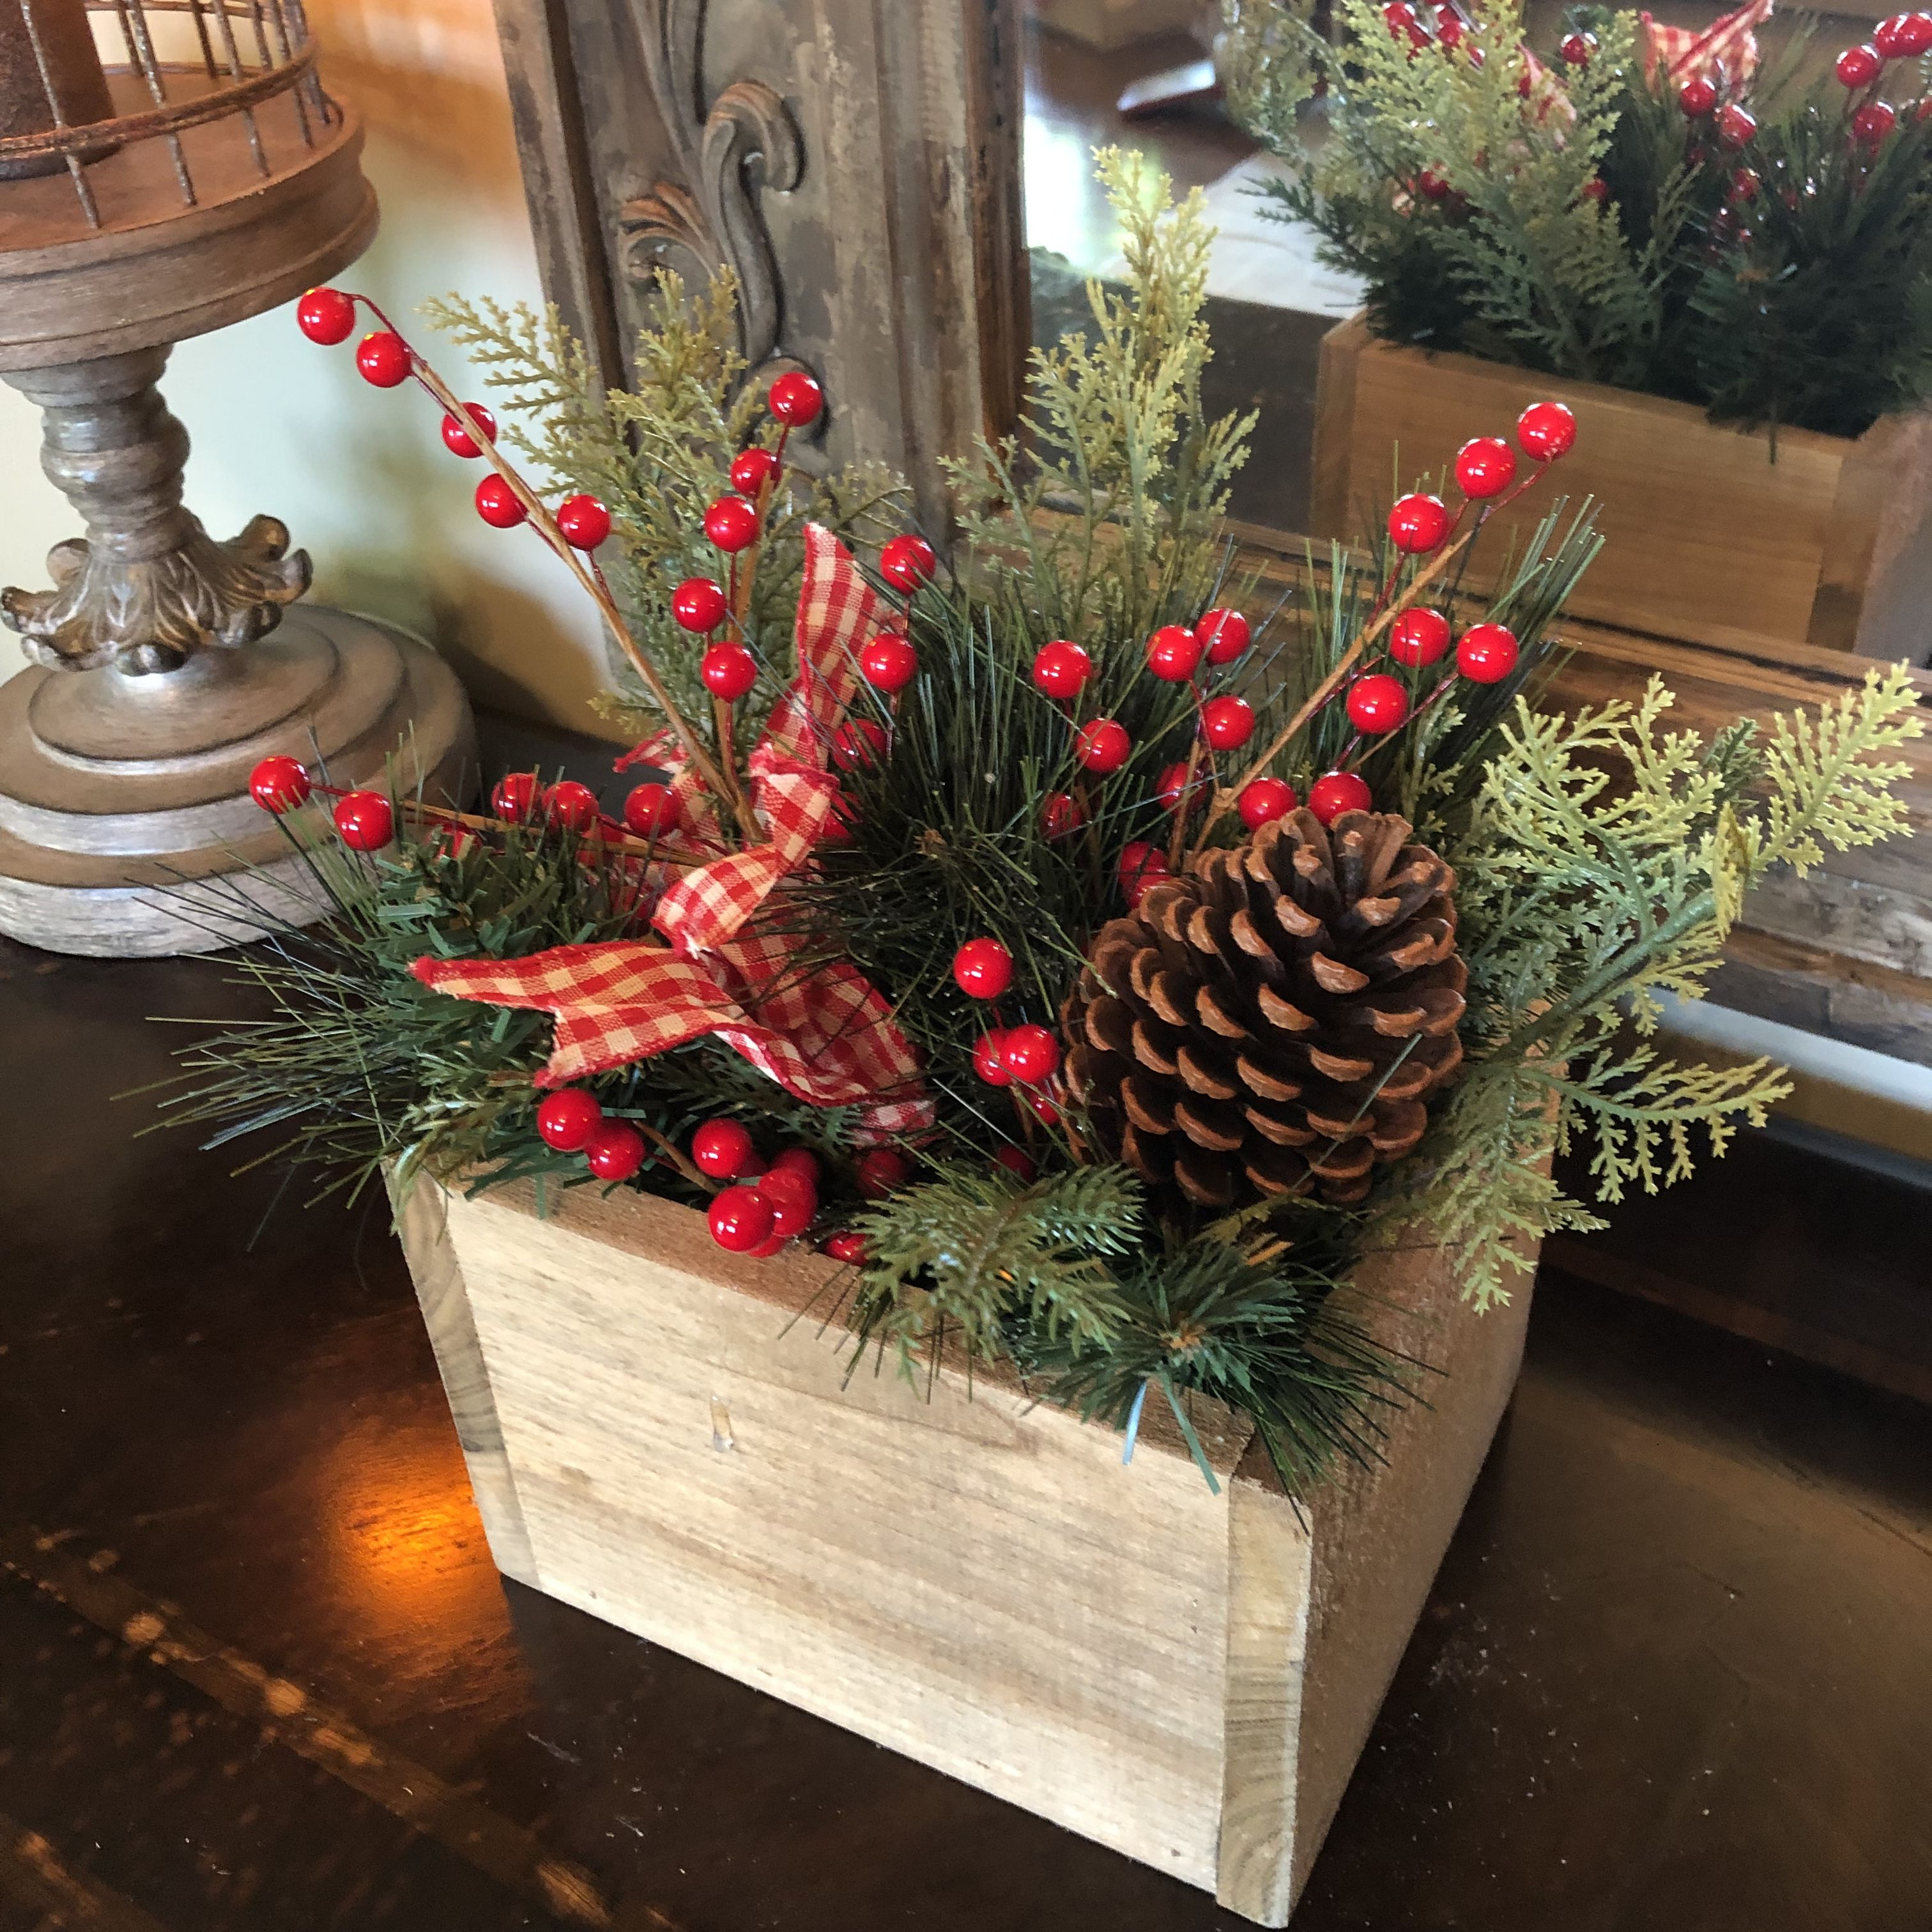 Pin By Leigh Anna On Wooden Centerpiece Christmas Boxes Christmas Centerpieces Wooden Centerpieces Christmas Decorations